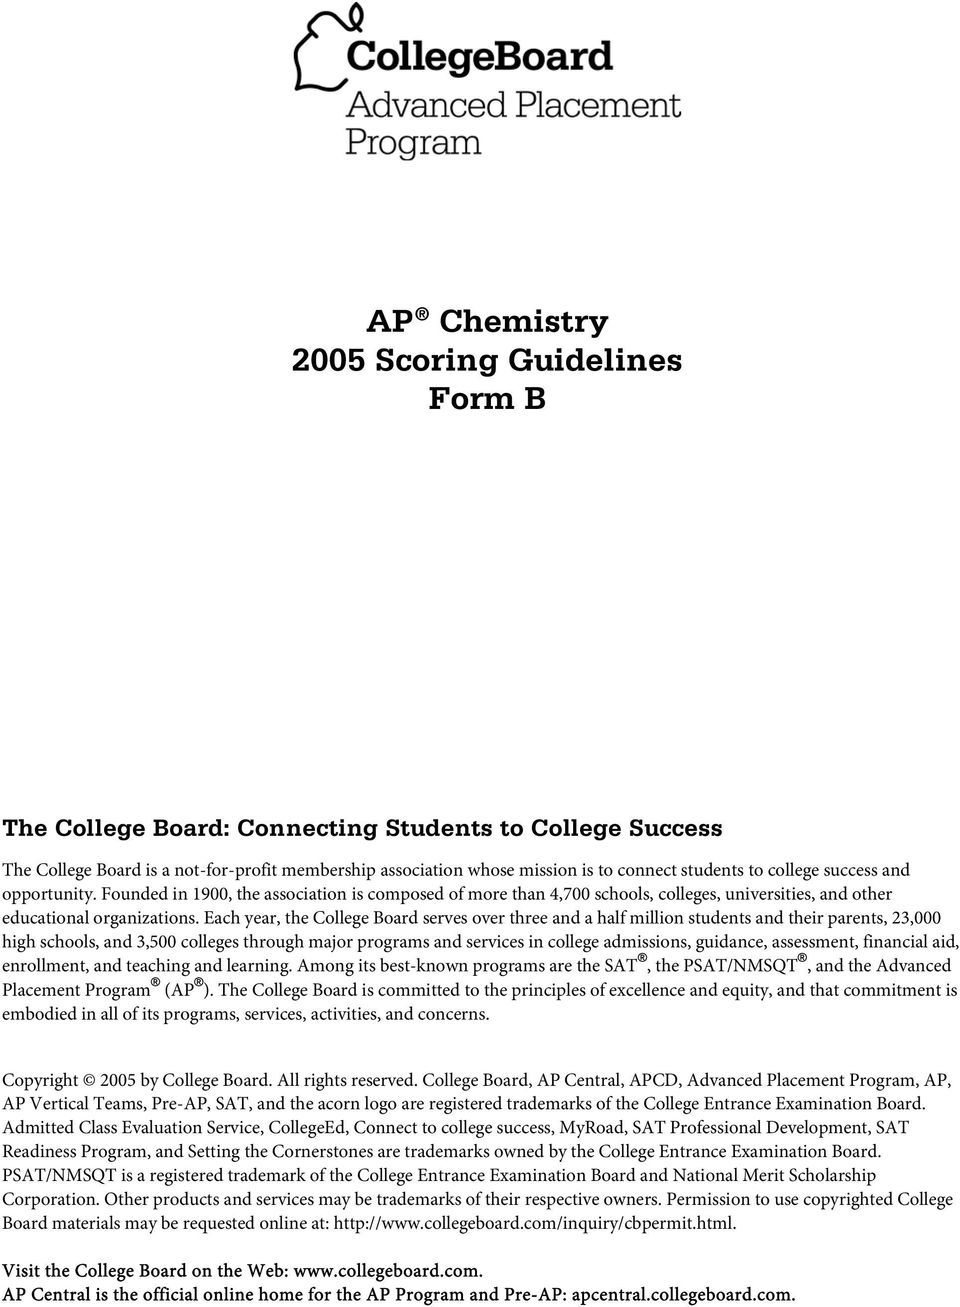 Each year, the College Board serves over three and a half million students  and their